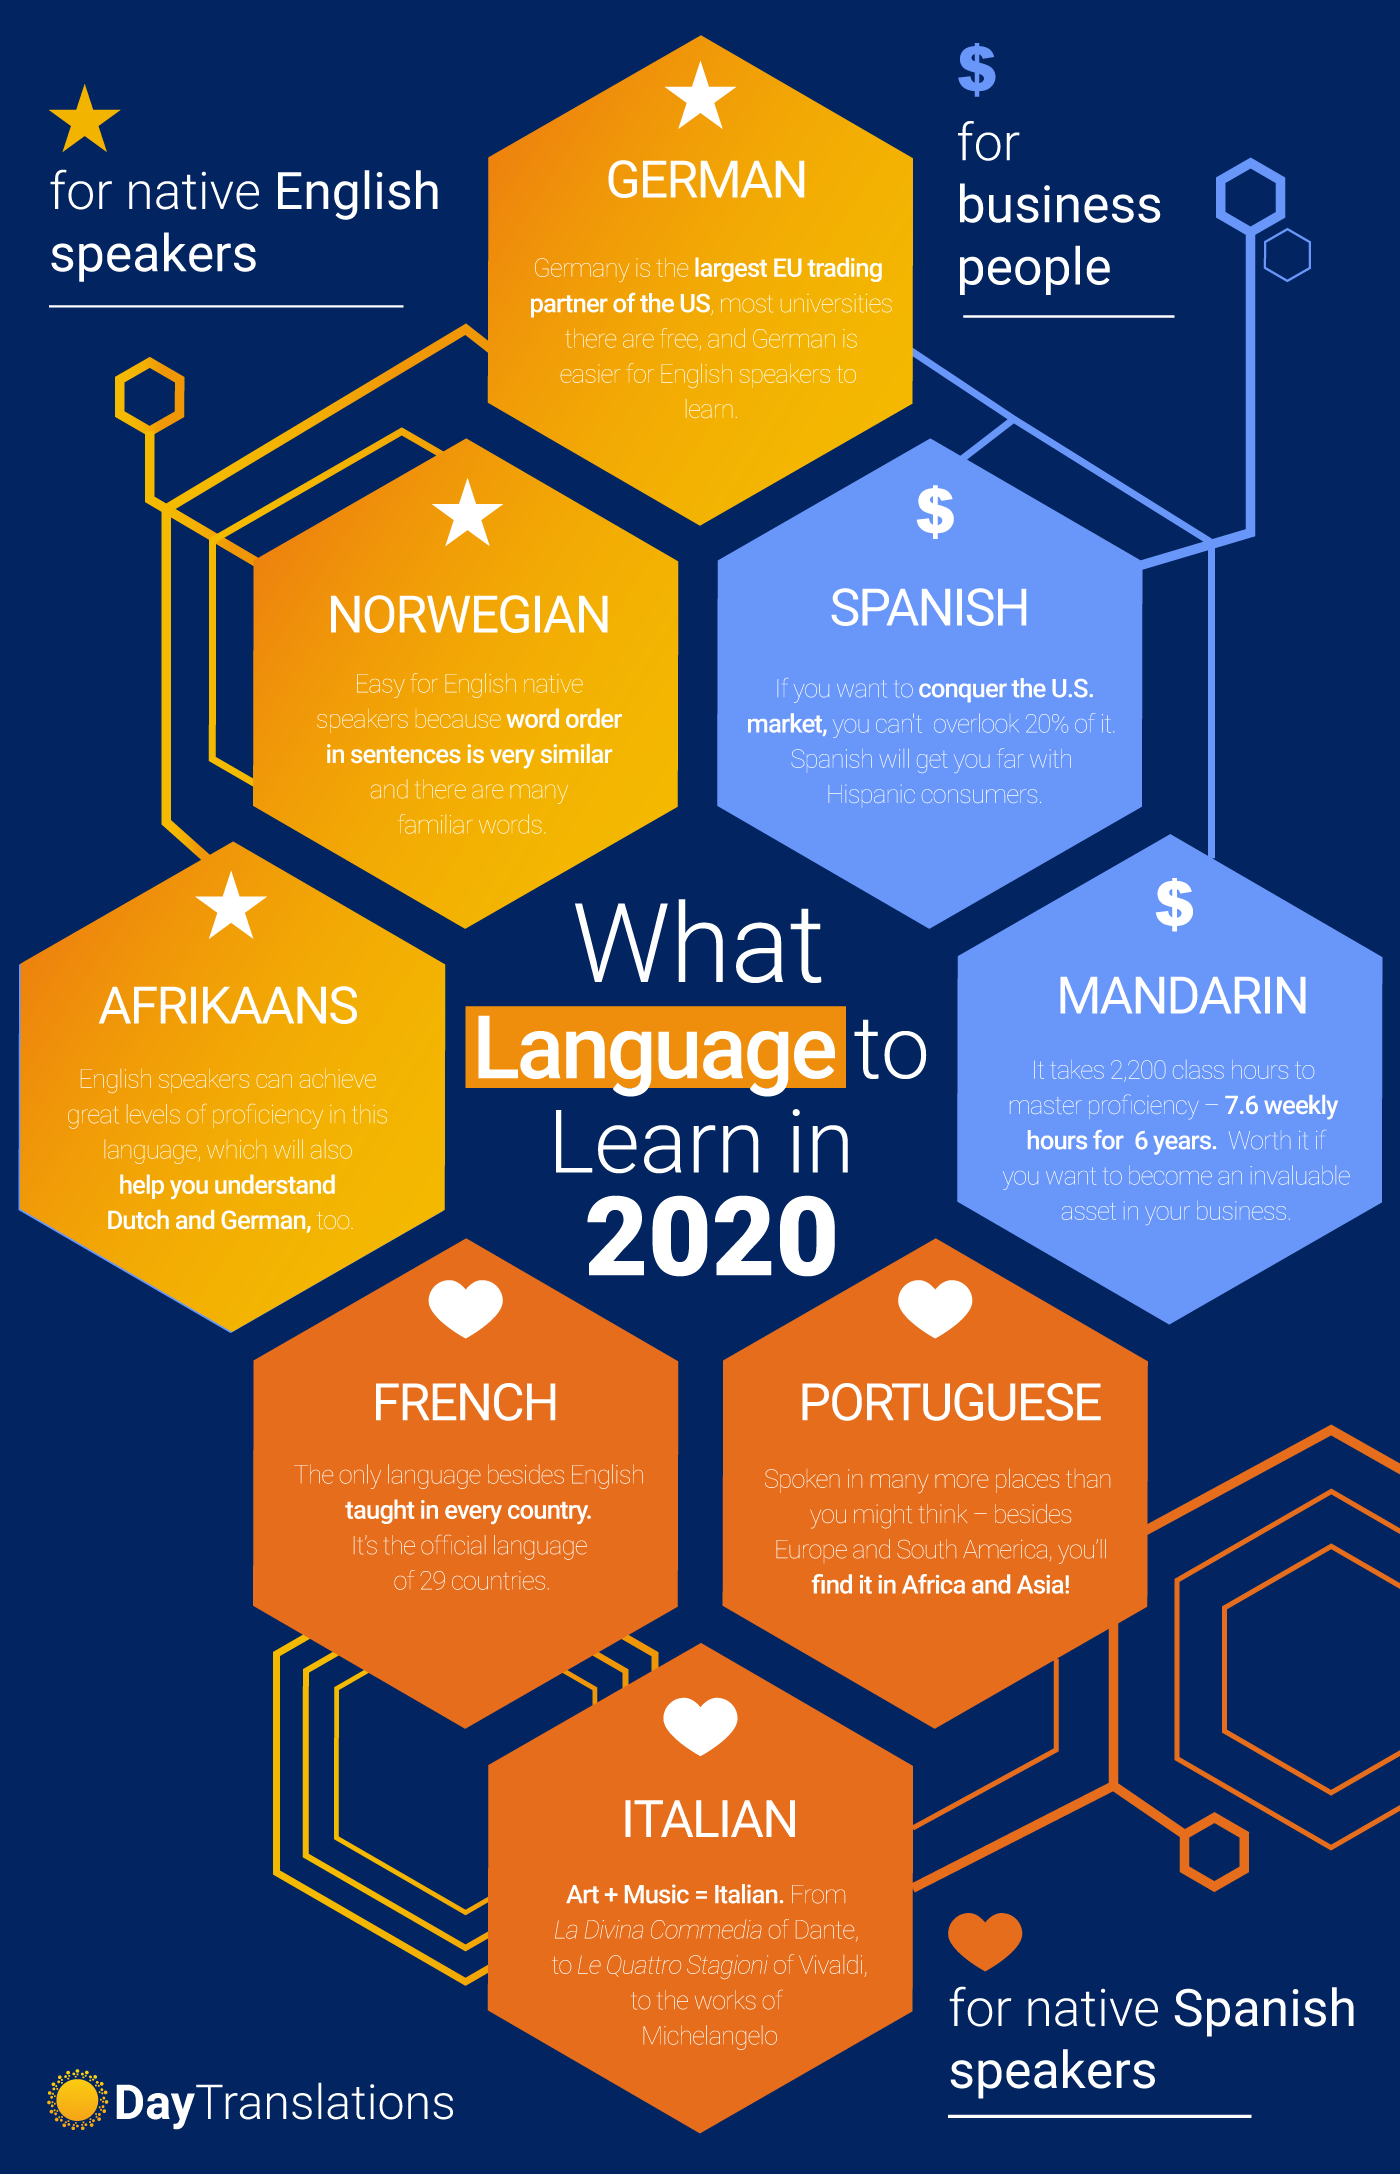 What Language Should I Learn 2020 In 2020 Language Learning